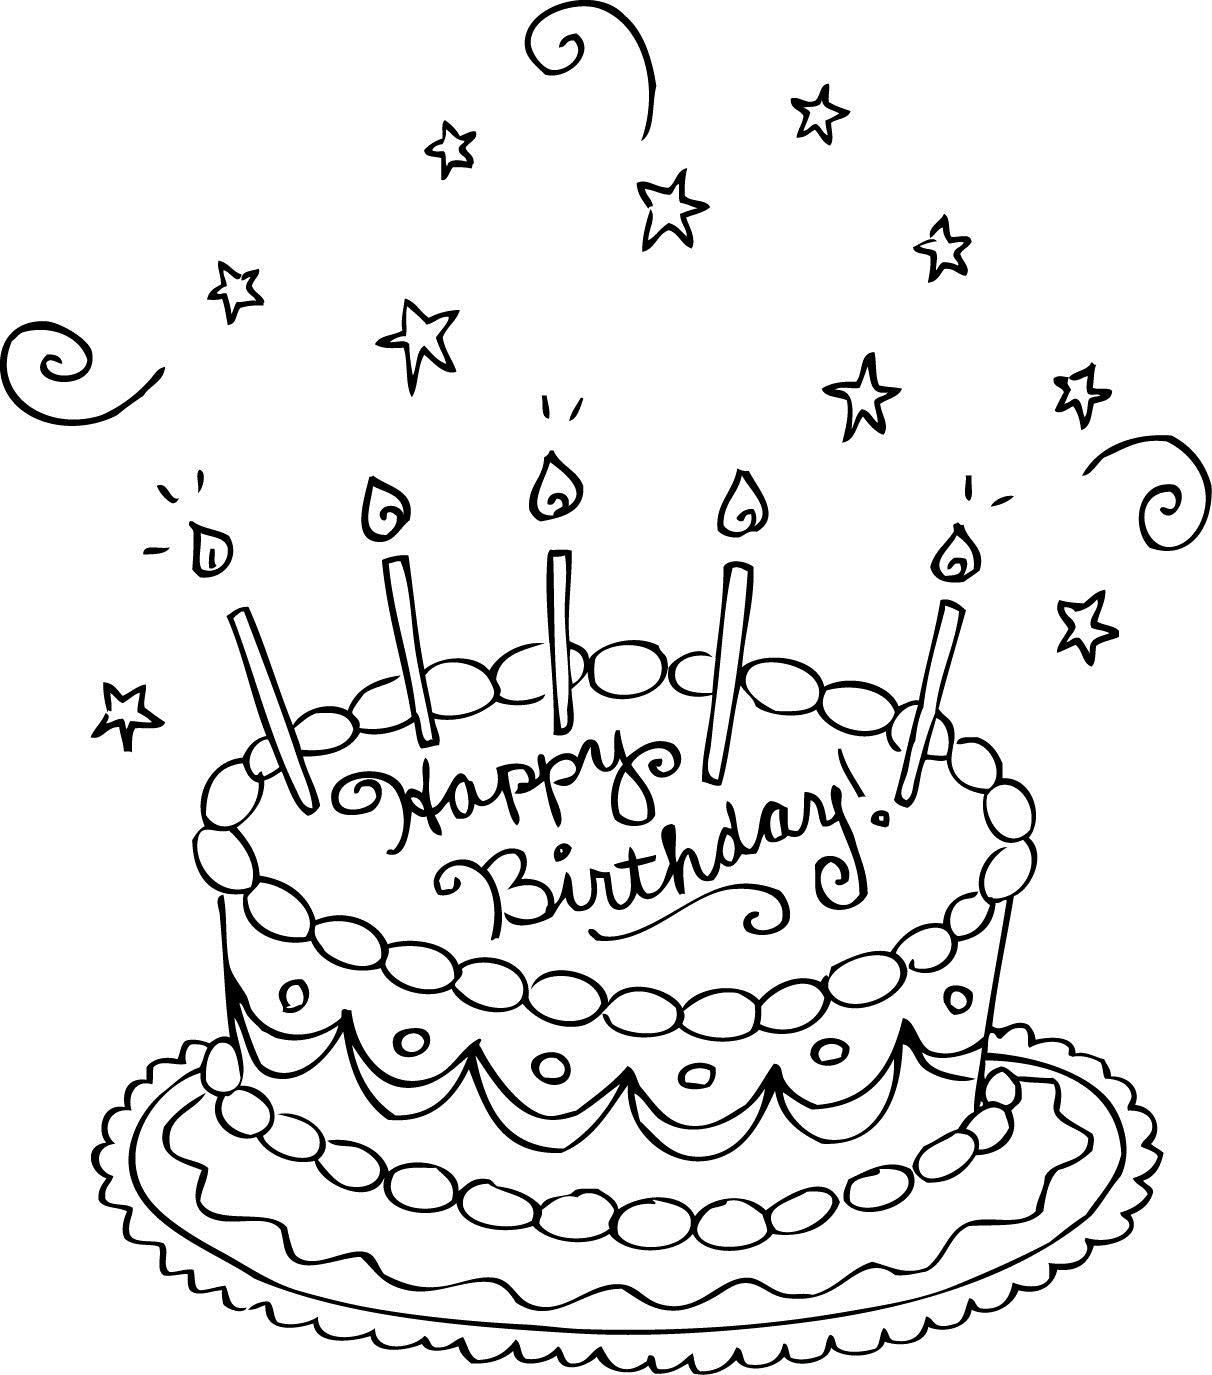 free printable birthday coloring pages ; direct-coloring-pages-for-birthdays-free-printable-birthday-cake-kids